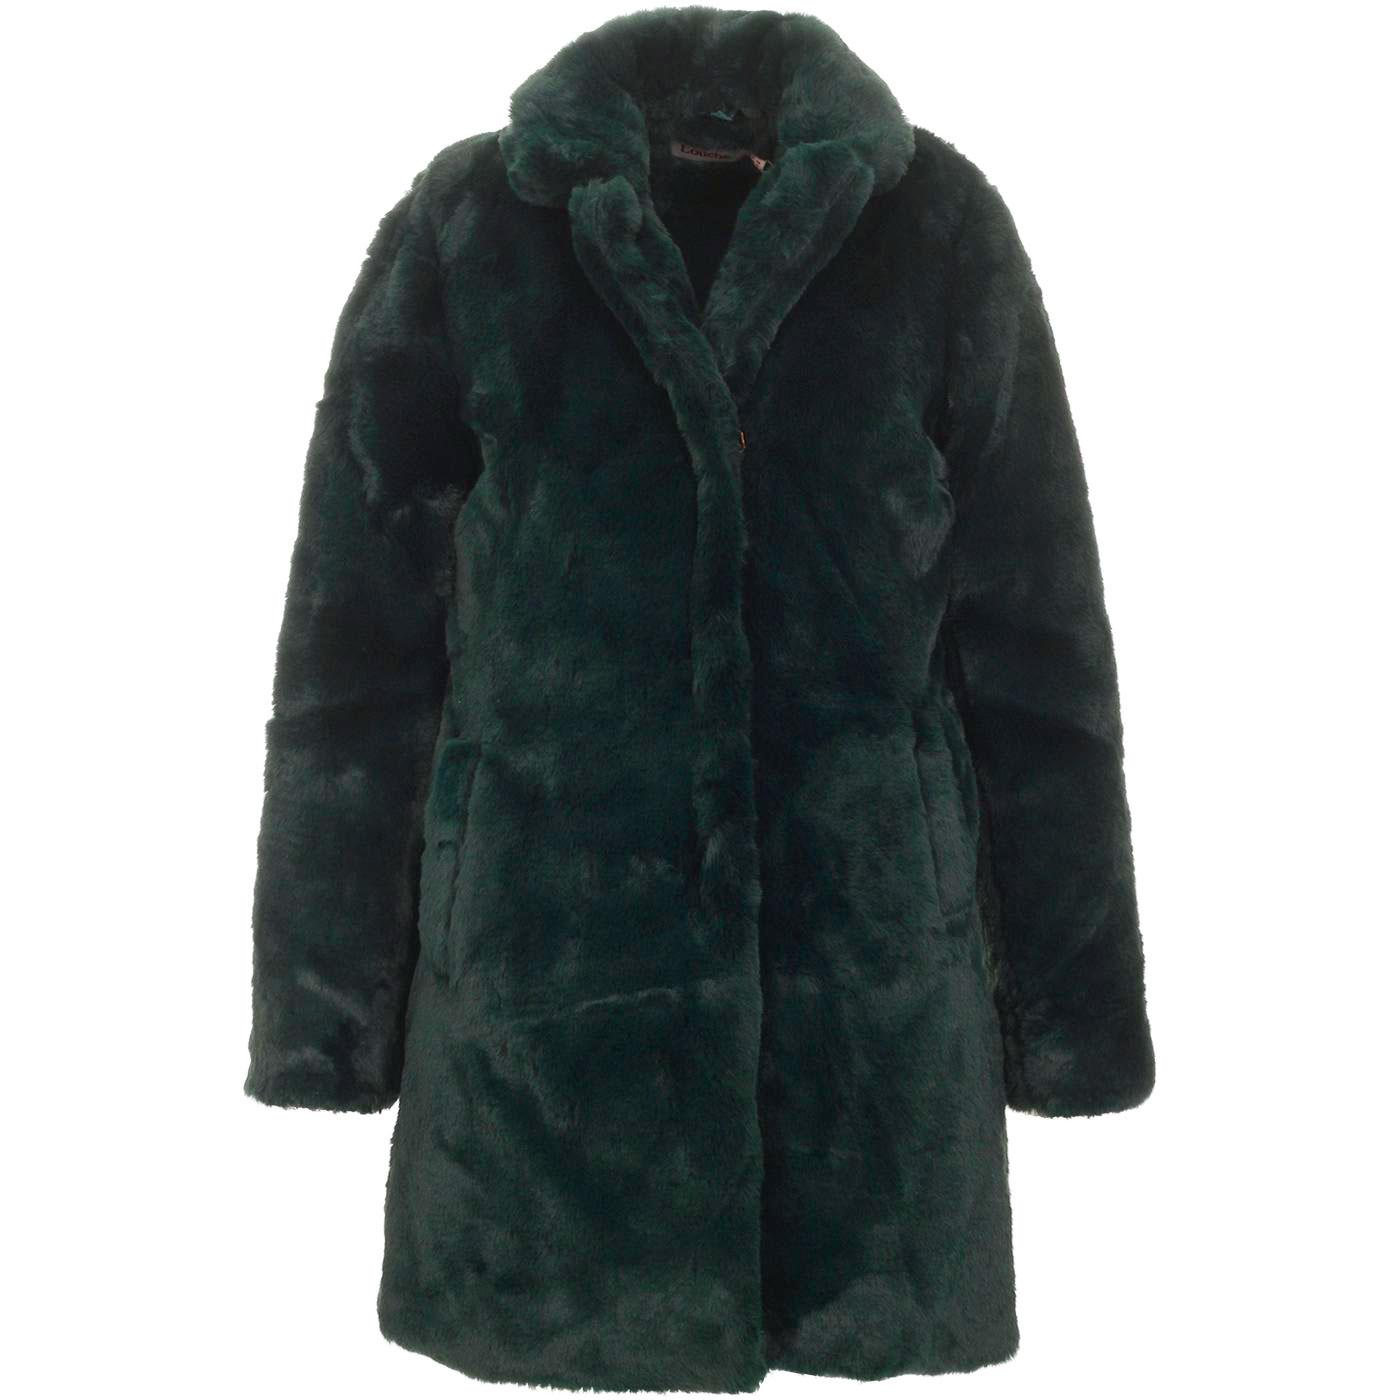 Wainwright LOUCHE Vintage Faux Fur Coat In Green